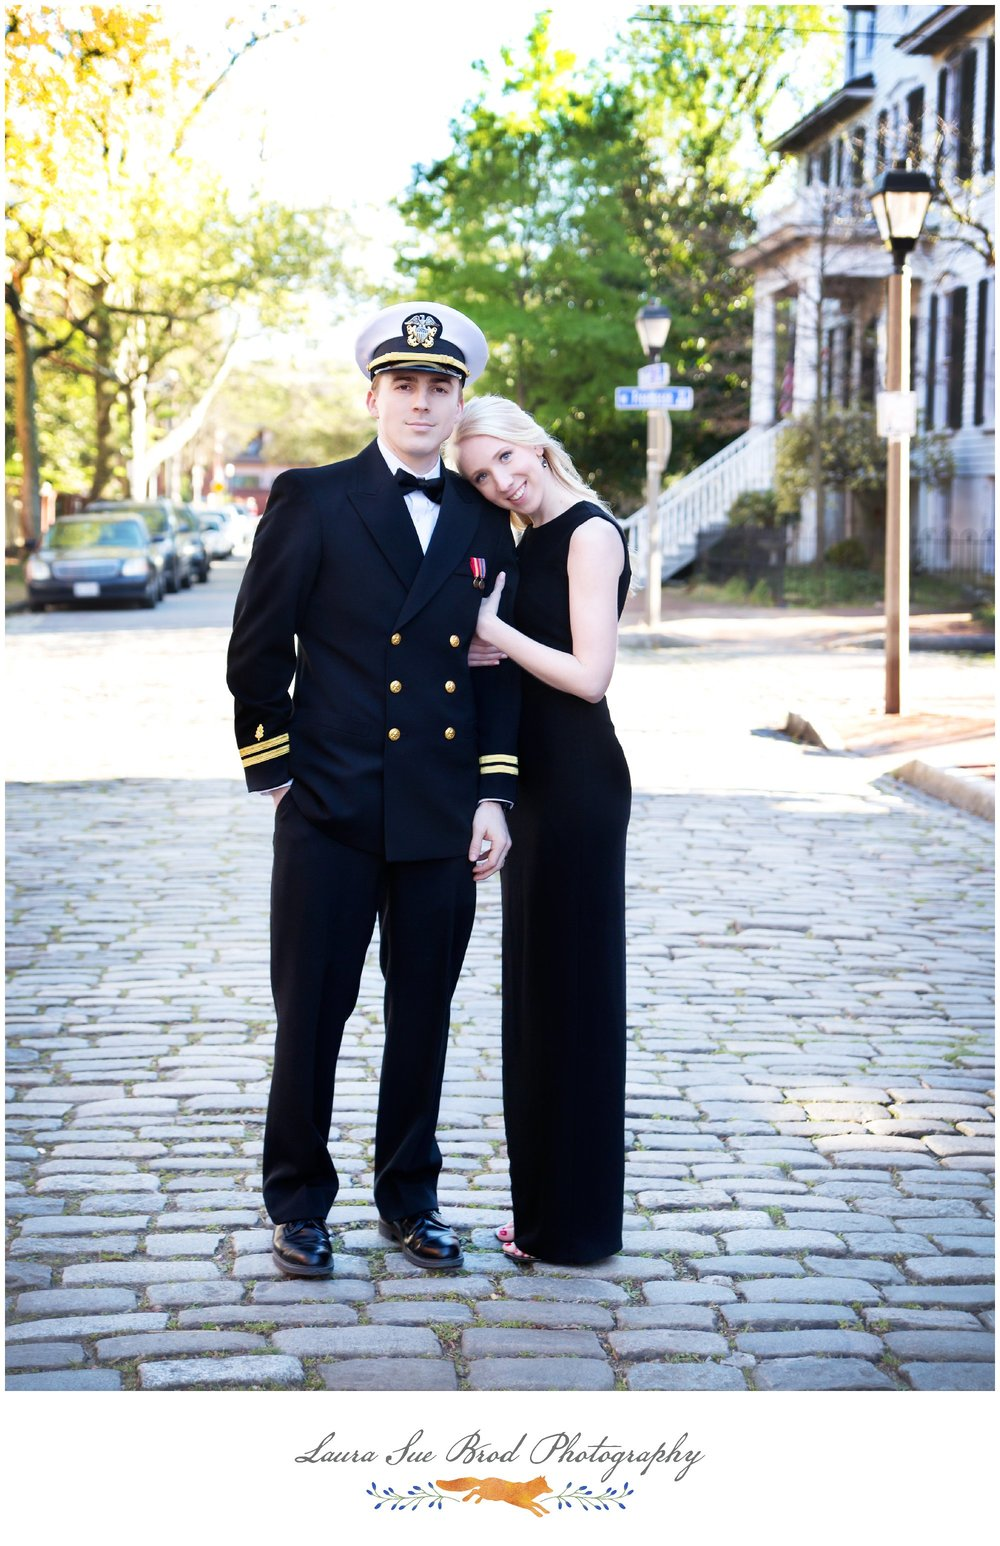 Military Couples Sessionin Norfolk, Virginia's Freemason District.  Copyright 2017 - Laura Sue Brod Photography  www.laurasuebrod.com